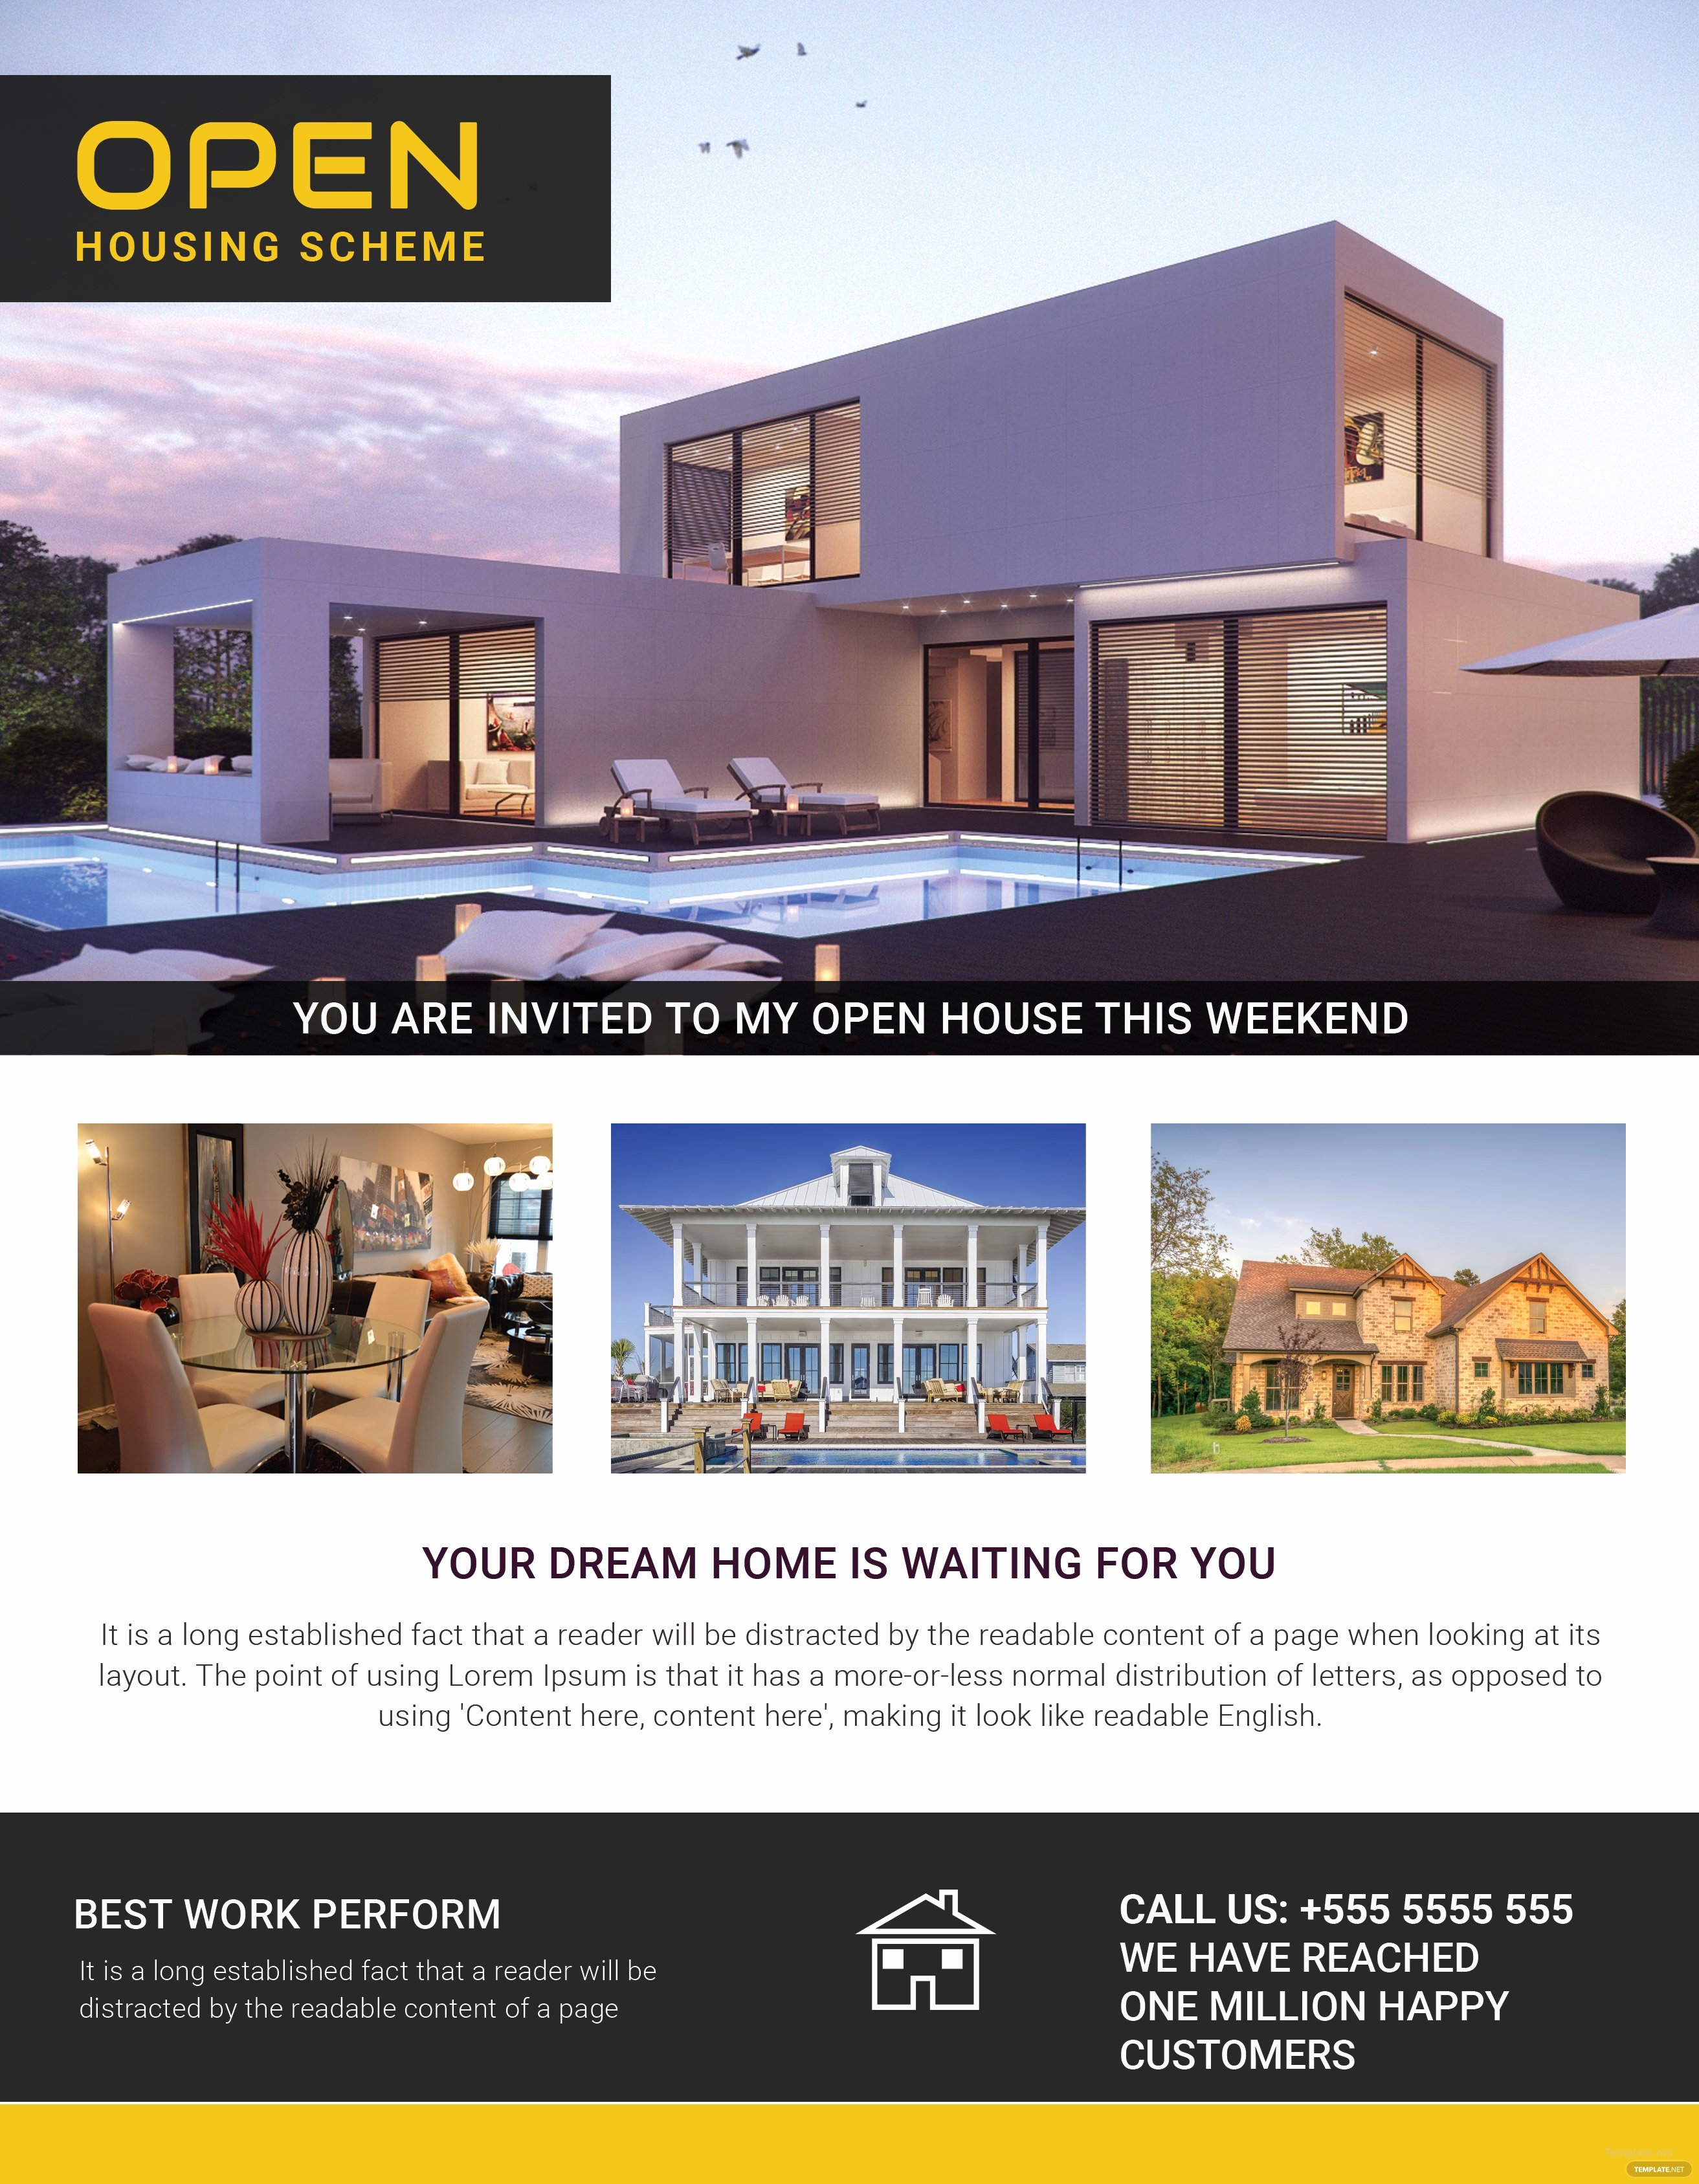 Broker Open House Flyer Best Of Open Housing Scheme Flyer Template In Adobe Shop